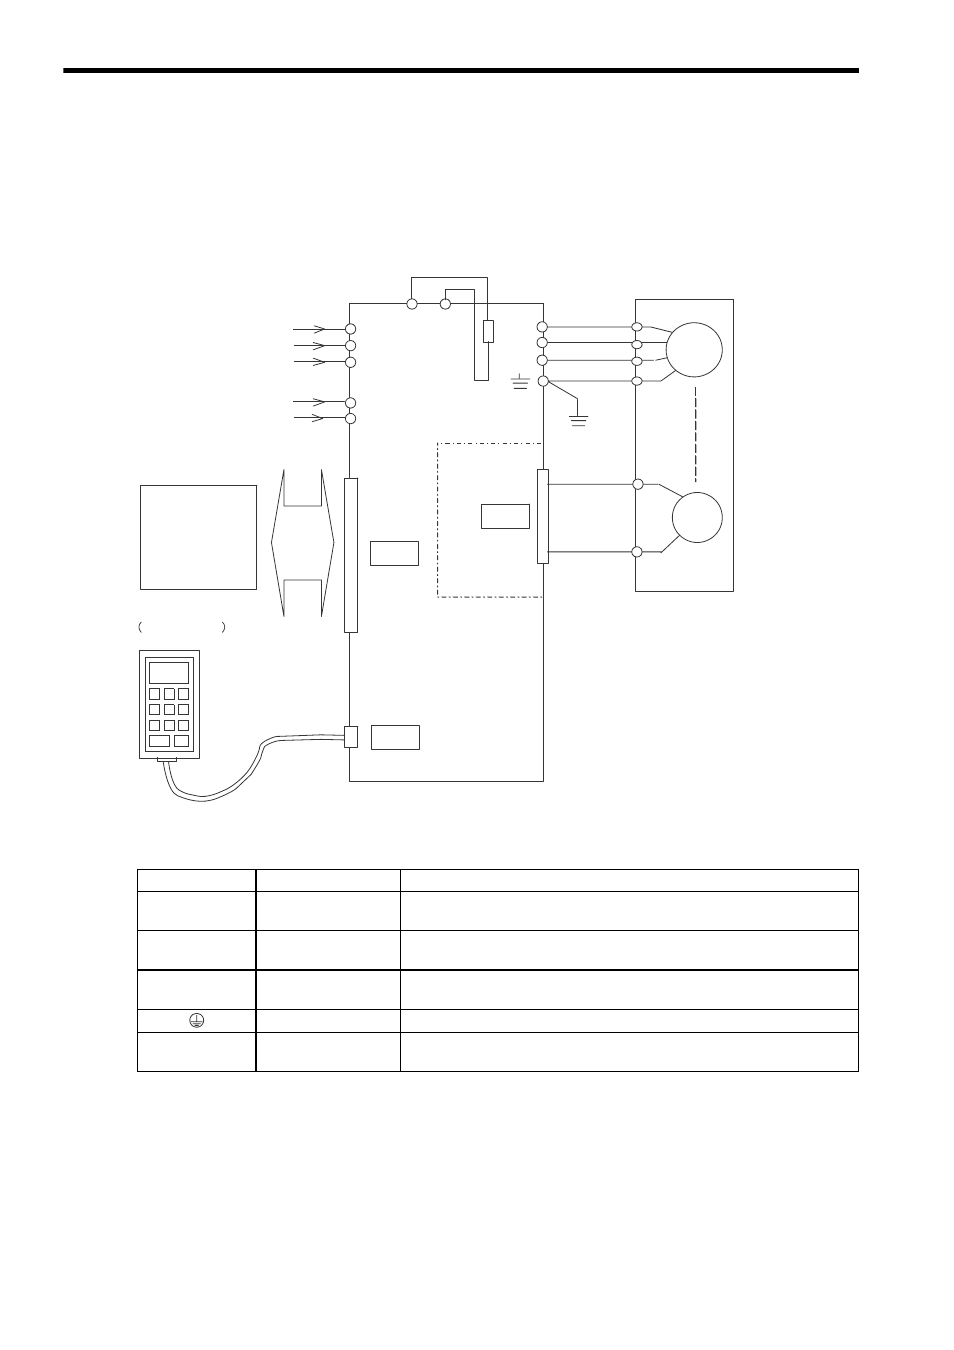 1 Connection Diagram  2 Names And Description Of Main Circuit Terminals  1 Wiring For Re